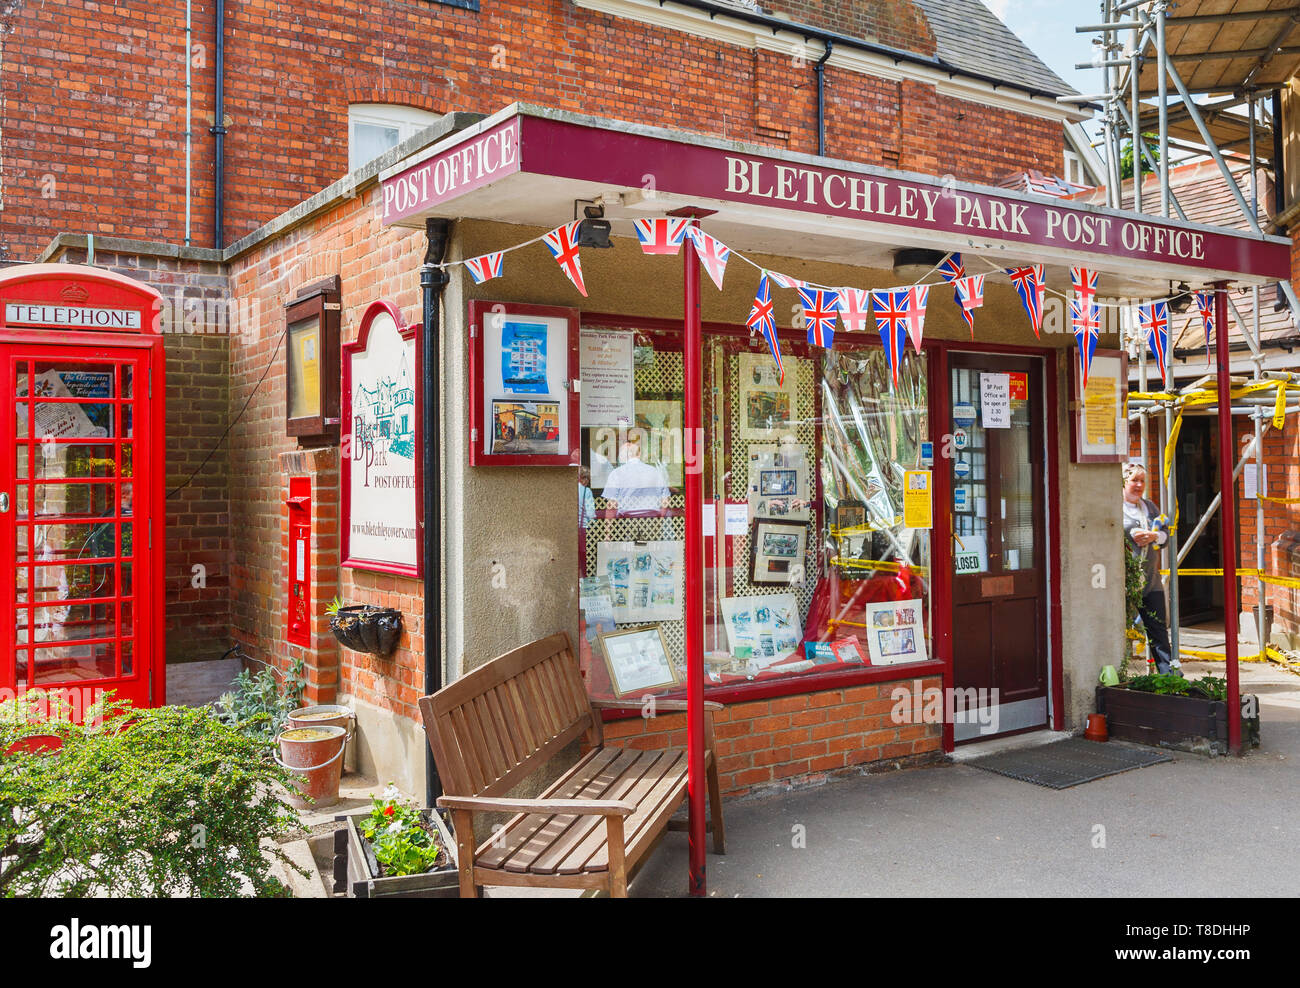 Post Office at Bletchley Park, once the top-secret home of the World War Two Codebreakers, now a leading heritage attraction - Stock Image